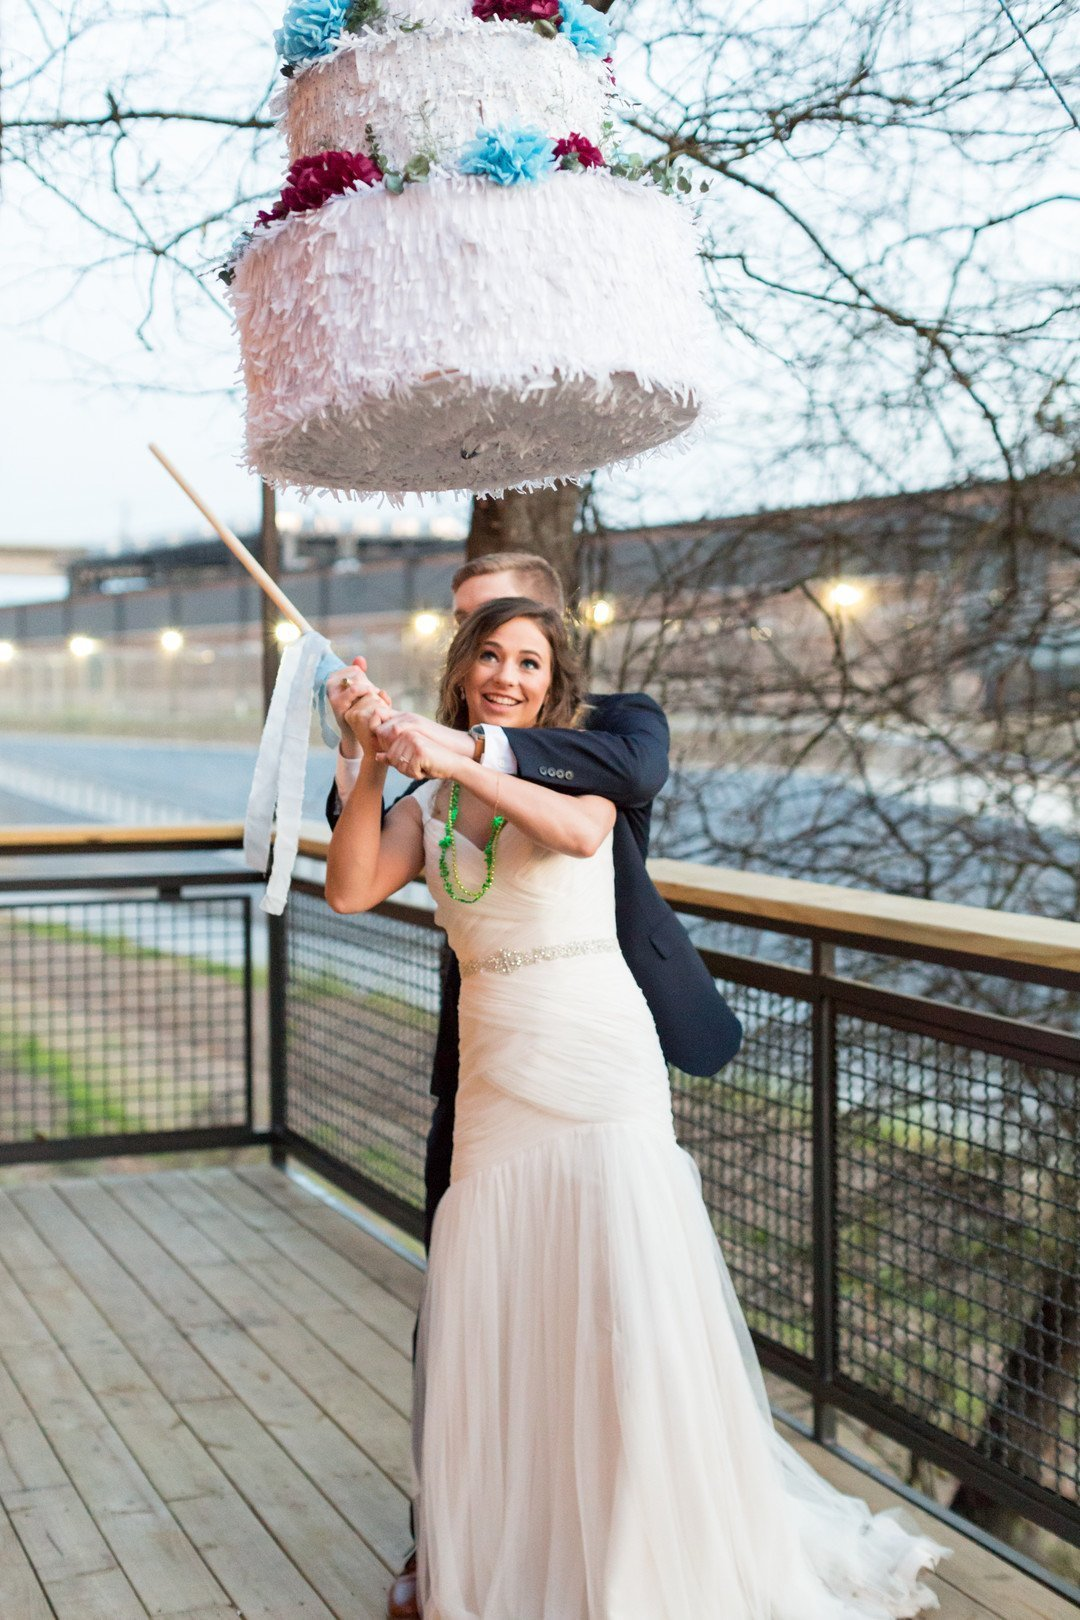 Bride and groom smashing wedding cake pinata